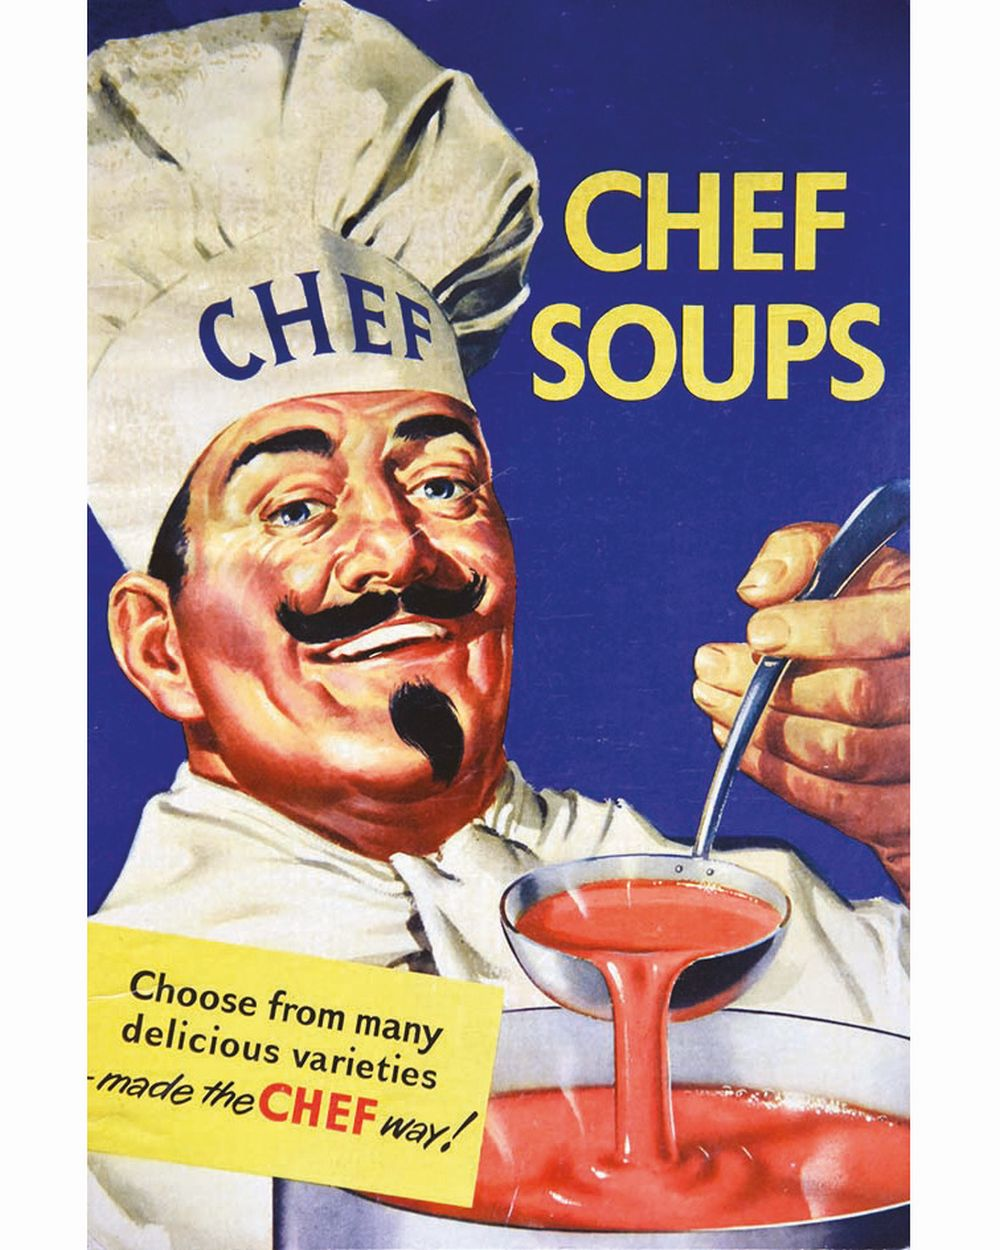 Chef Soups Choose from many delecious varieties-made the chef way!     vers 1950